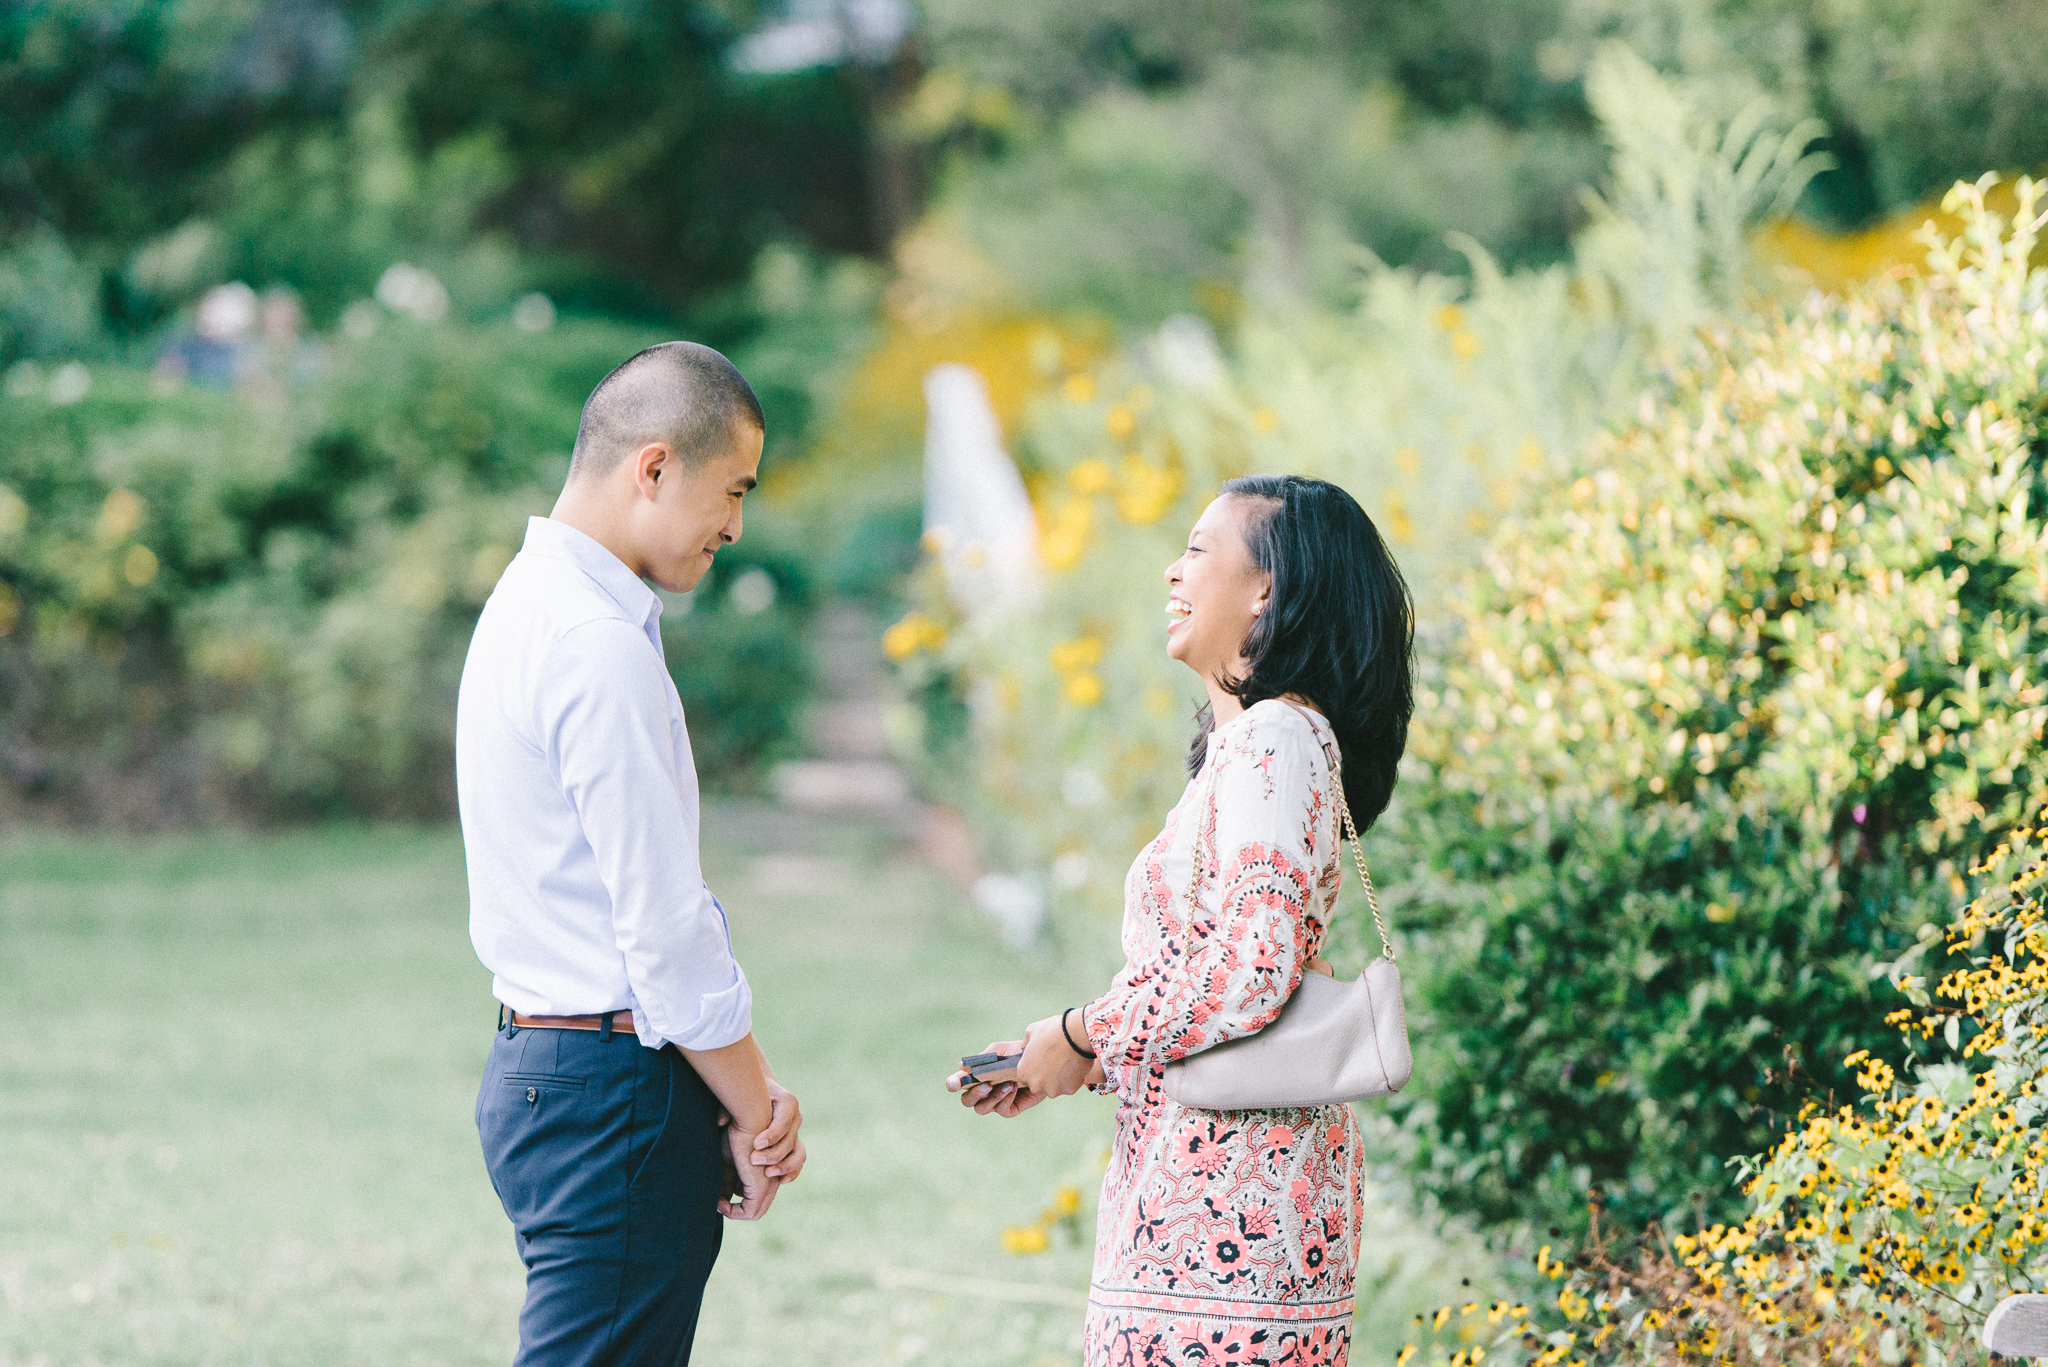 old-stone-house-garden-georgetown-proposal-dc-wedding-photographer-10